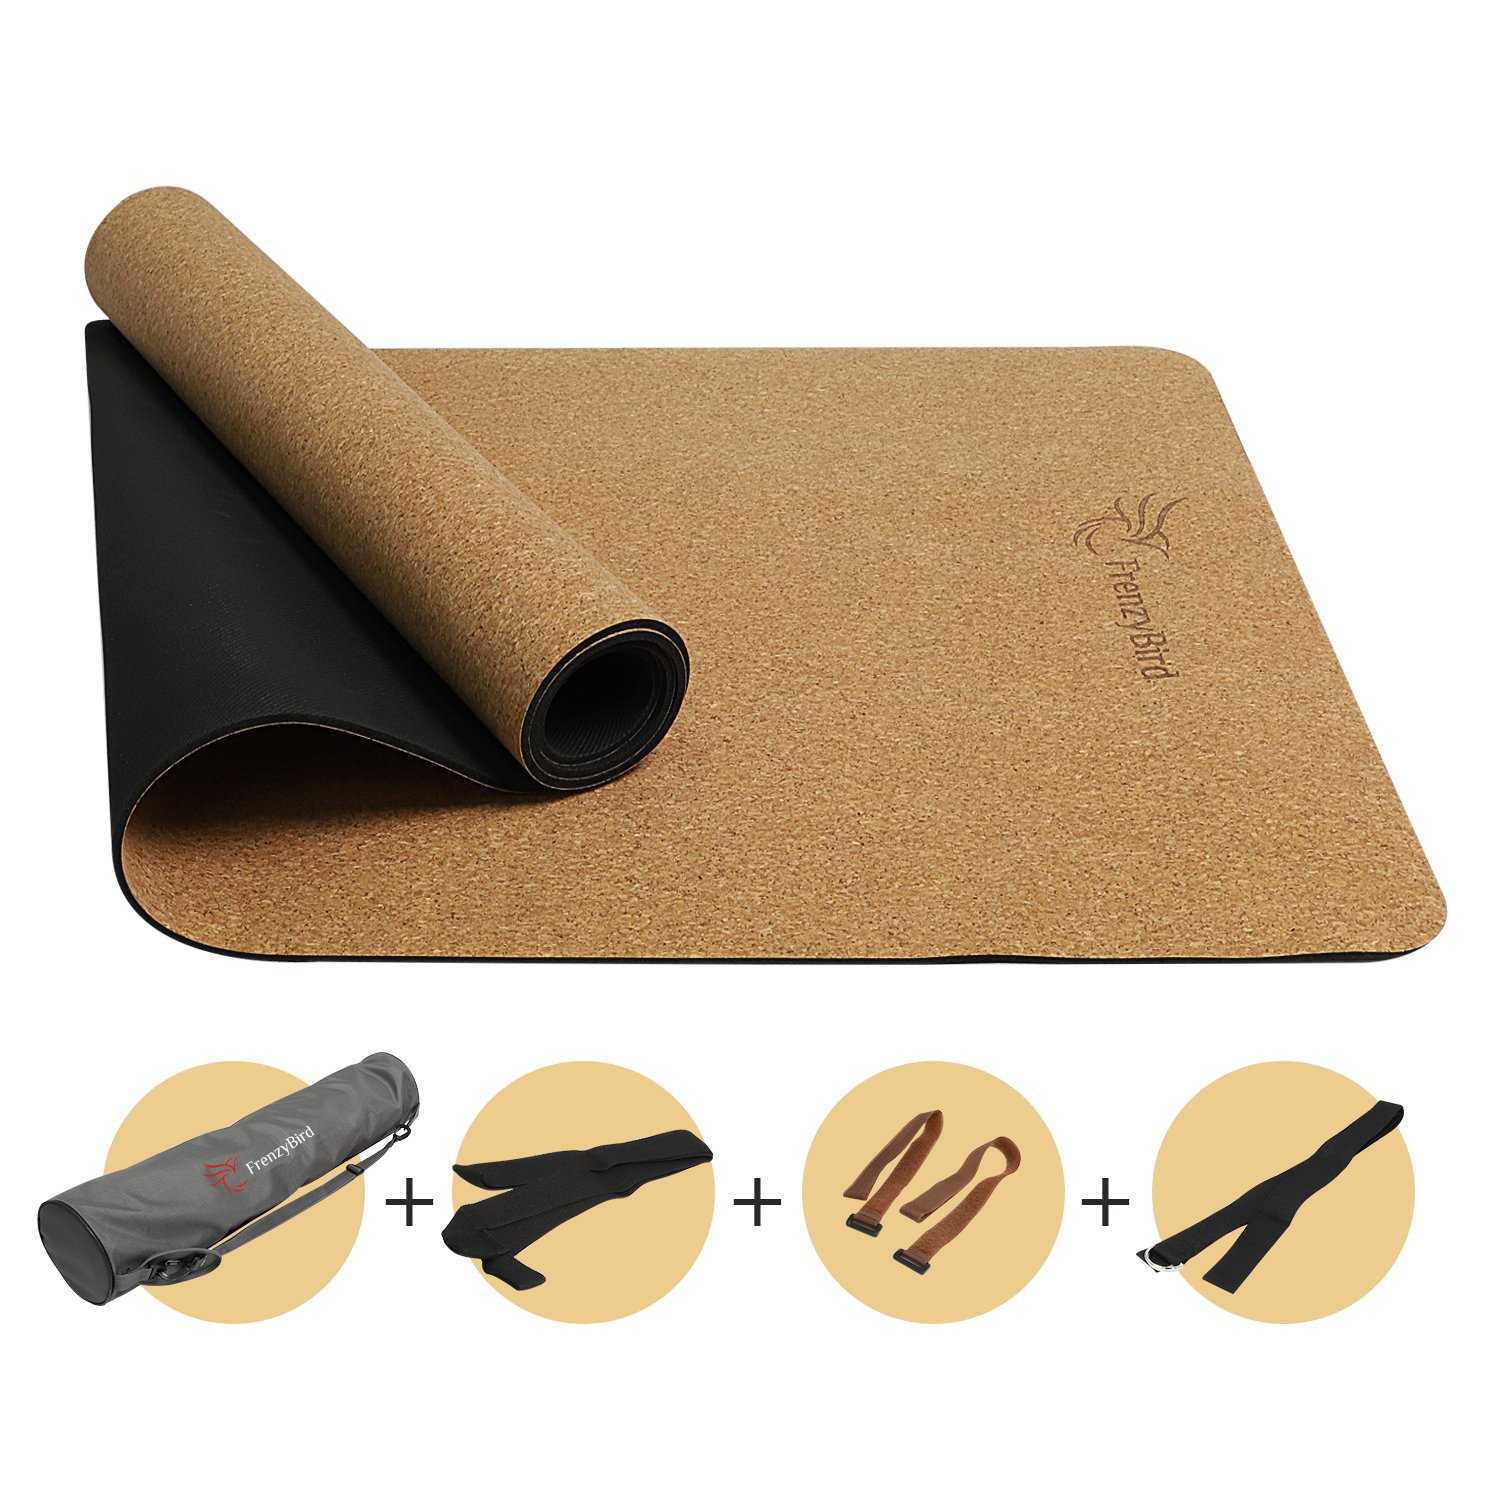 FrenzyBird 5mm Natural Cork Yoga Mat With OXFORD Mat Bag and Strap, Non-Slip, Double-Sided,Antimicrobial,Free of PVC and Other Harmful Chemicals, For Yoga,Hot Yoga and Pilates